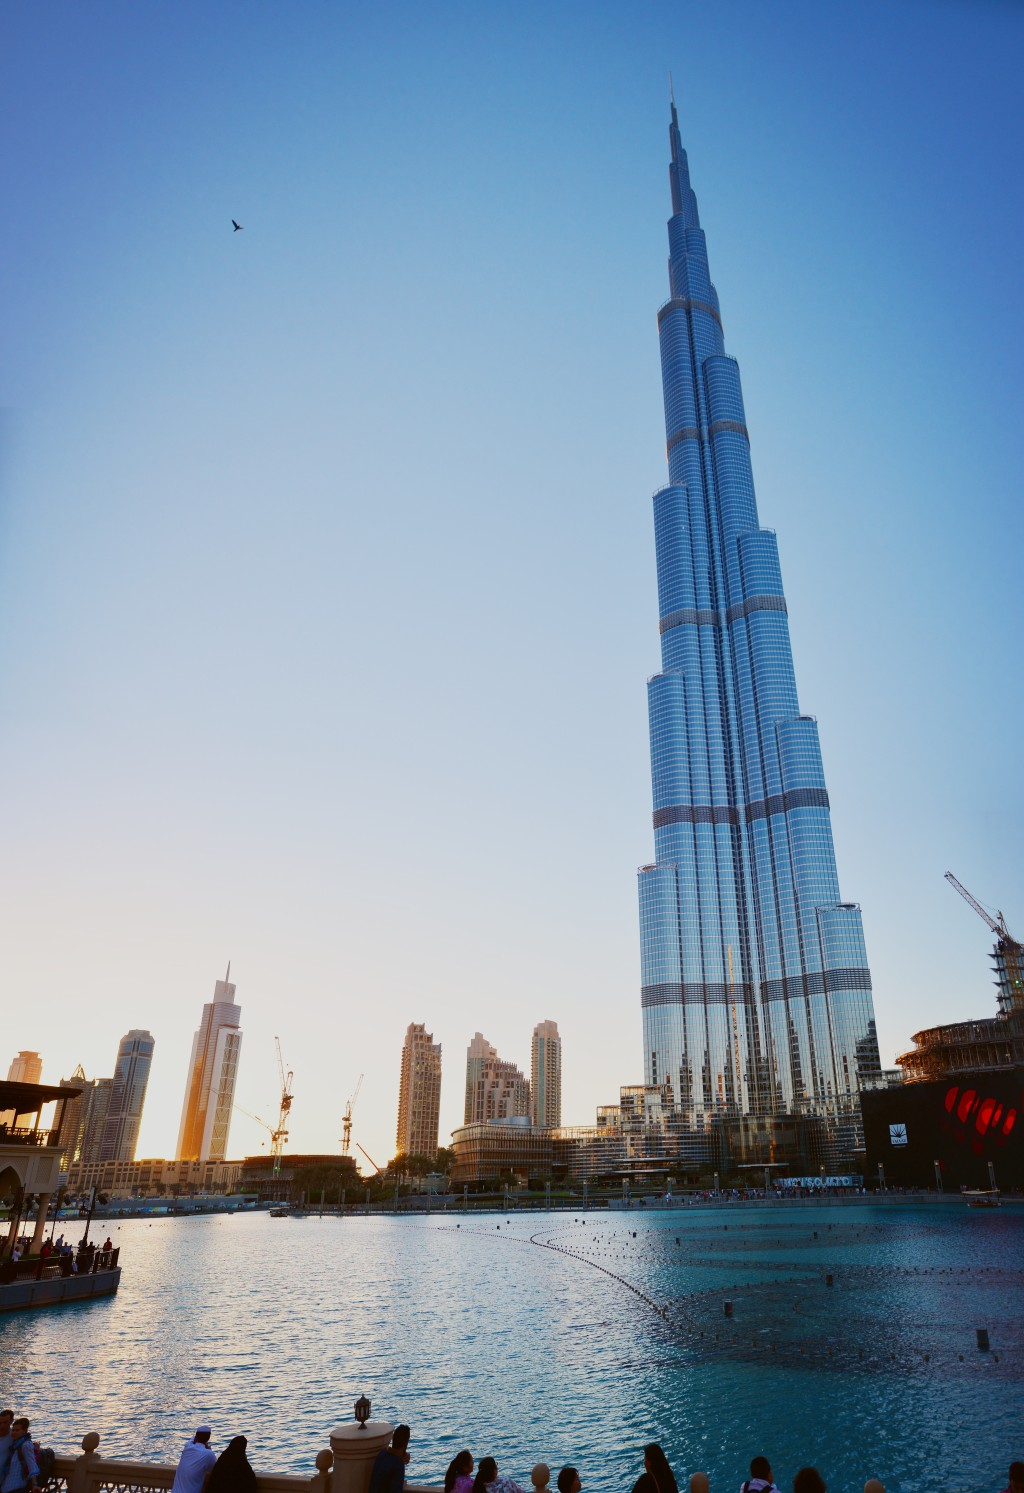 the Burj is so tall that to get it and the lake into one frame, I had to stitch a few shots together. A wider lens would be nice